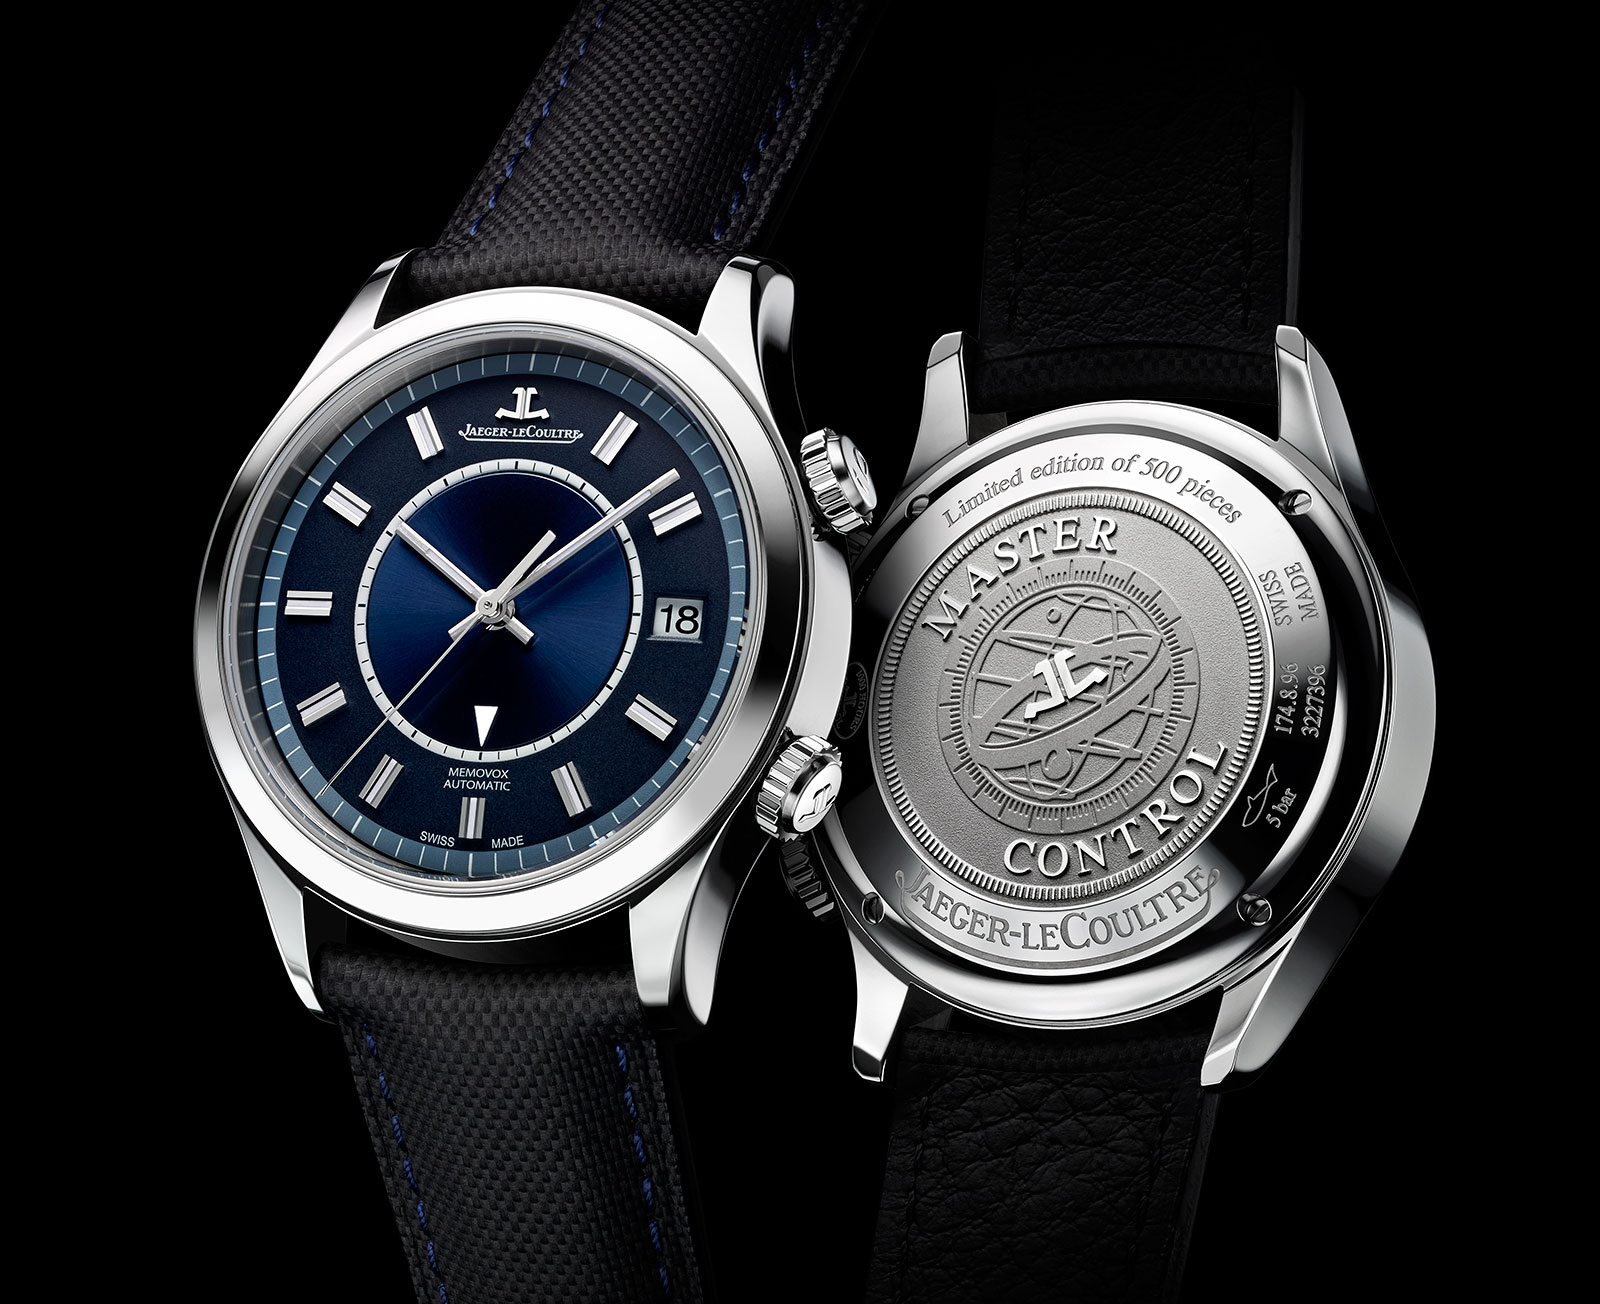 Jaeger LeCoultre Unveils Their New Master Memovox